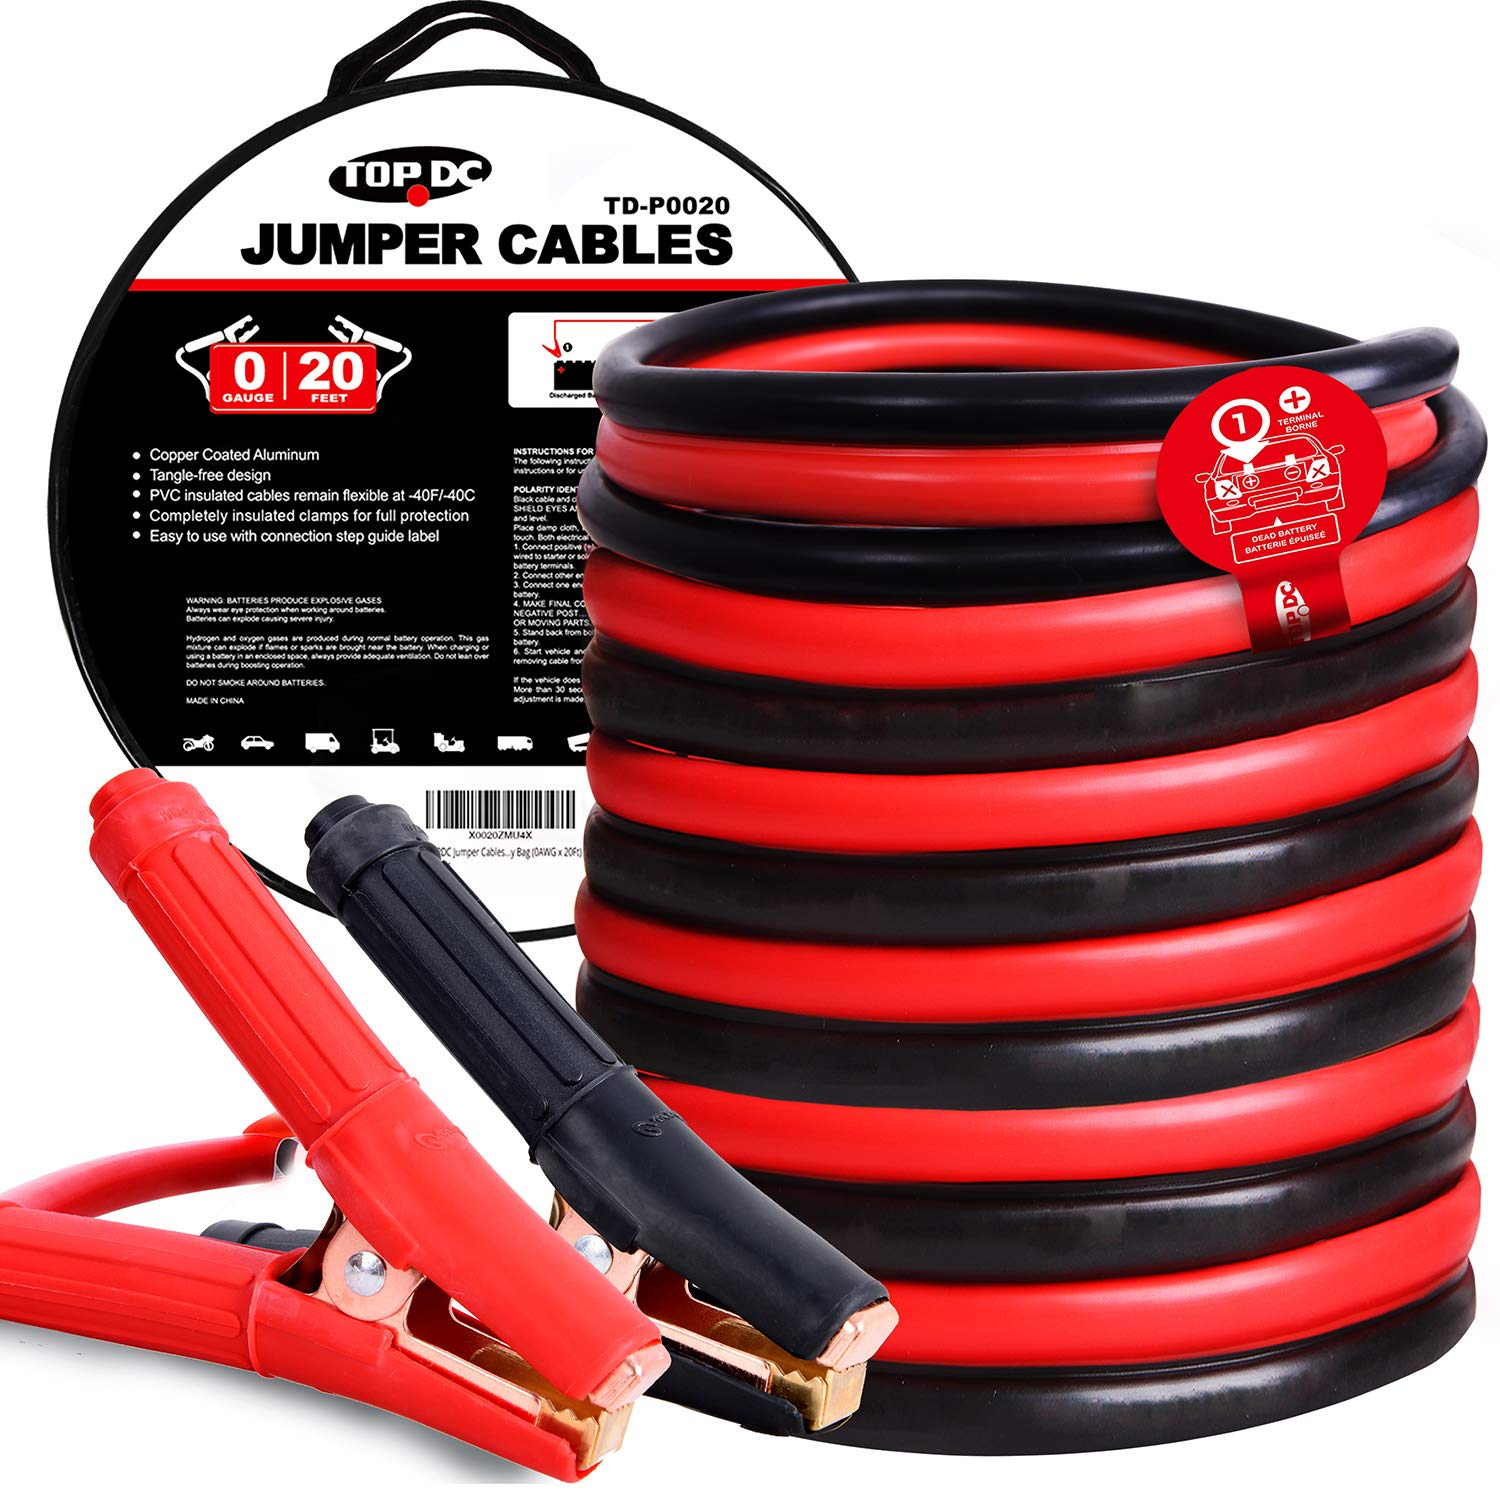 TOPDC Jumper Cables 0 Gauge 20 Feet Heavy Duty Booster Cables with Carry Bag (0AWG x 20Ft) by TOPDC